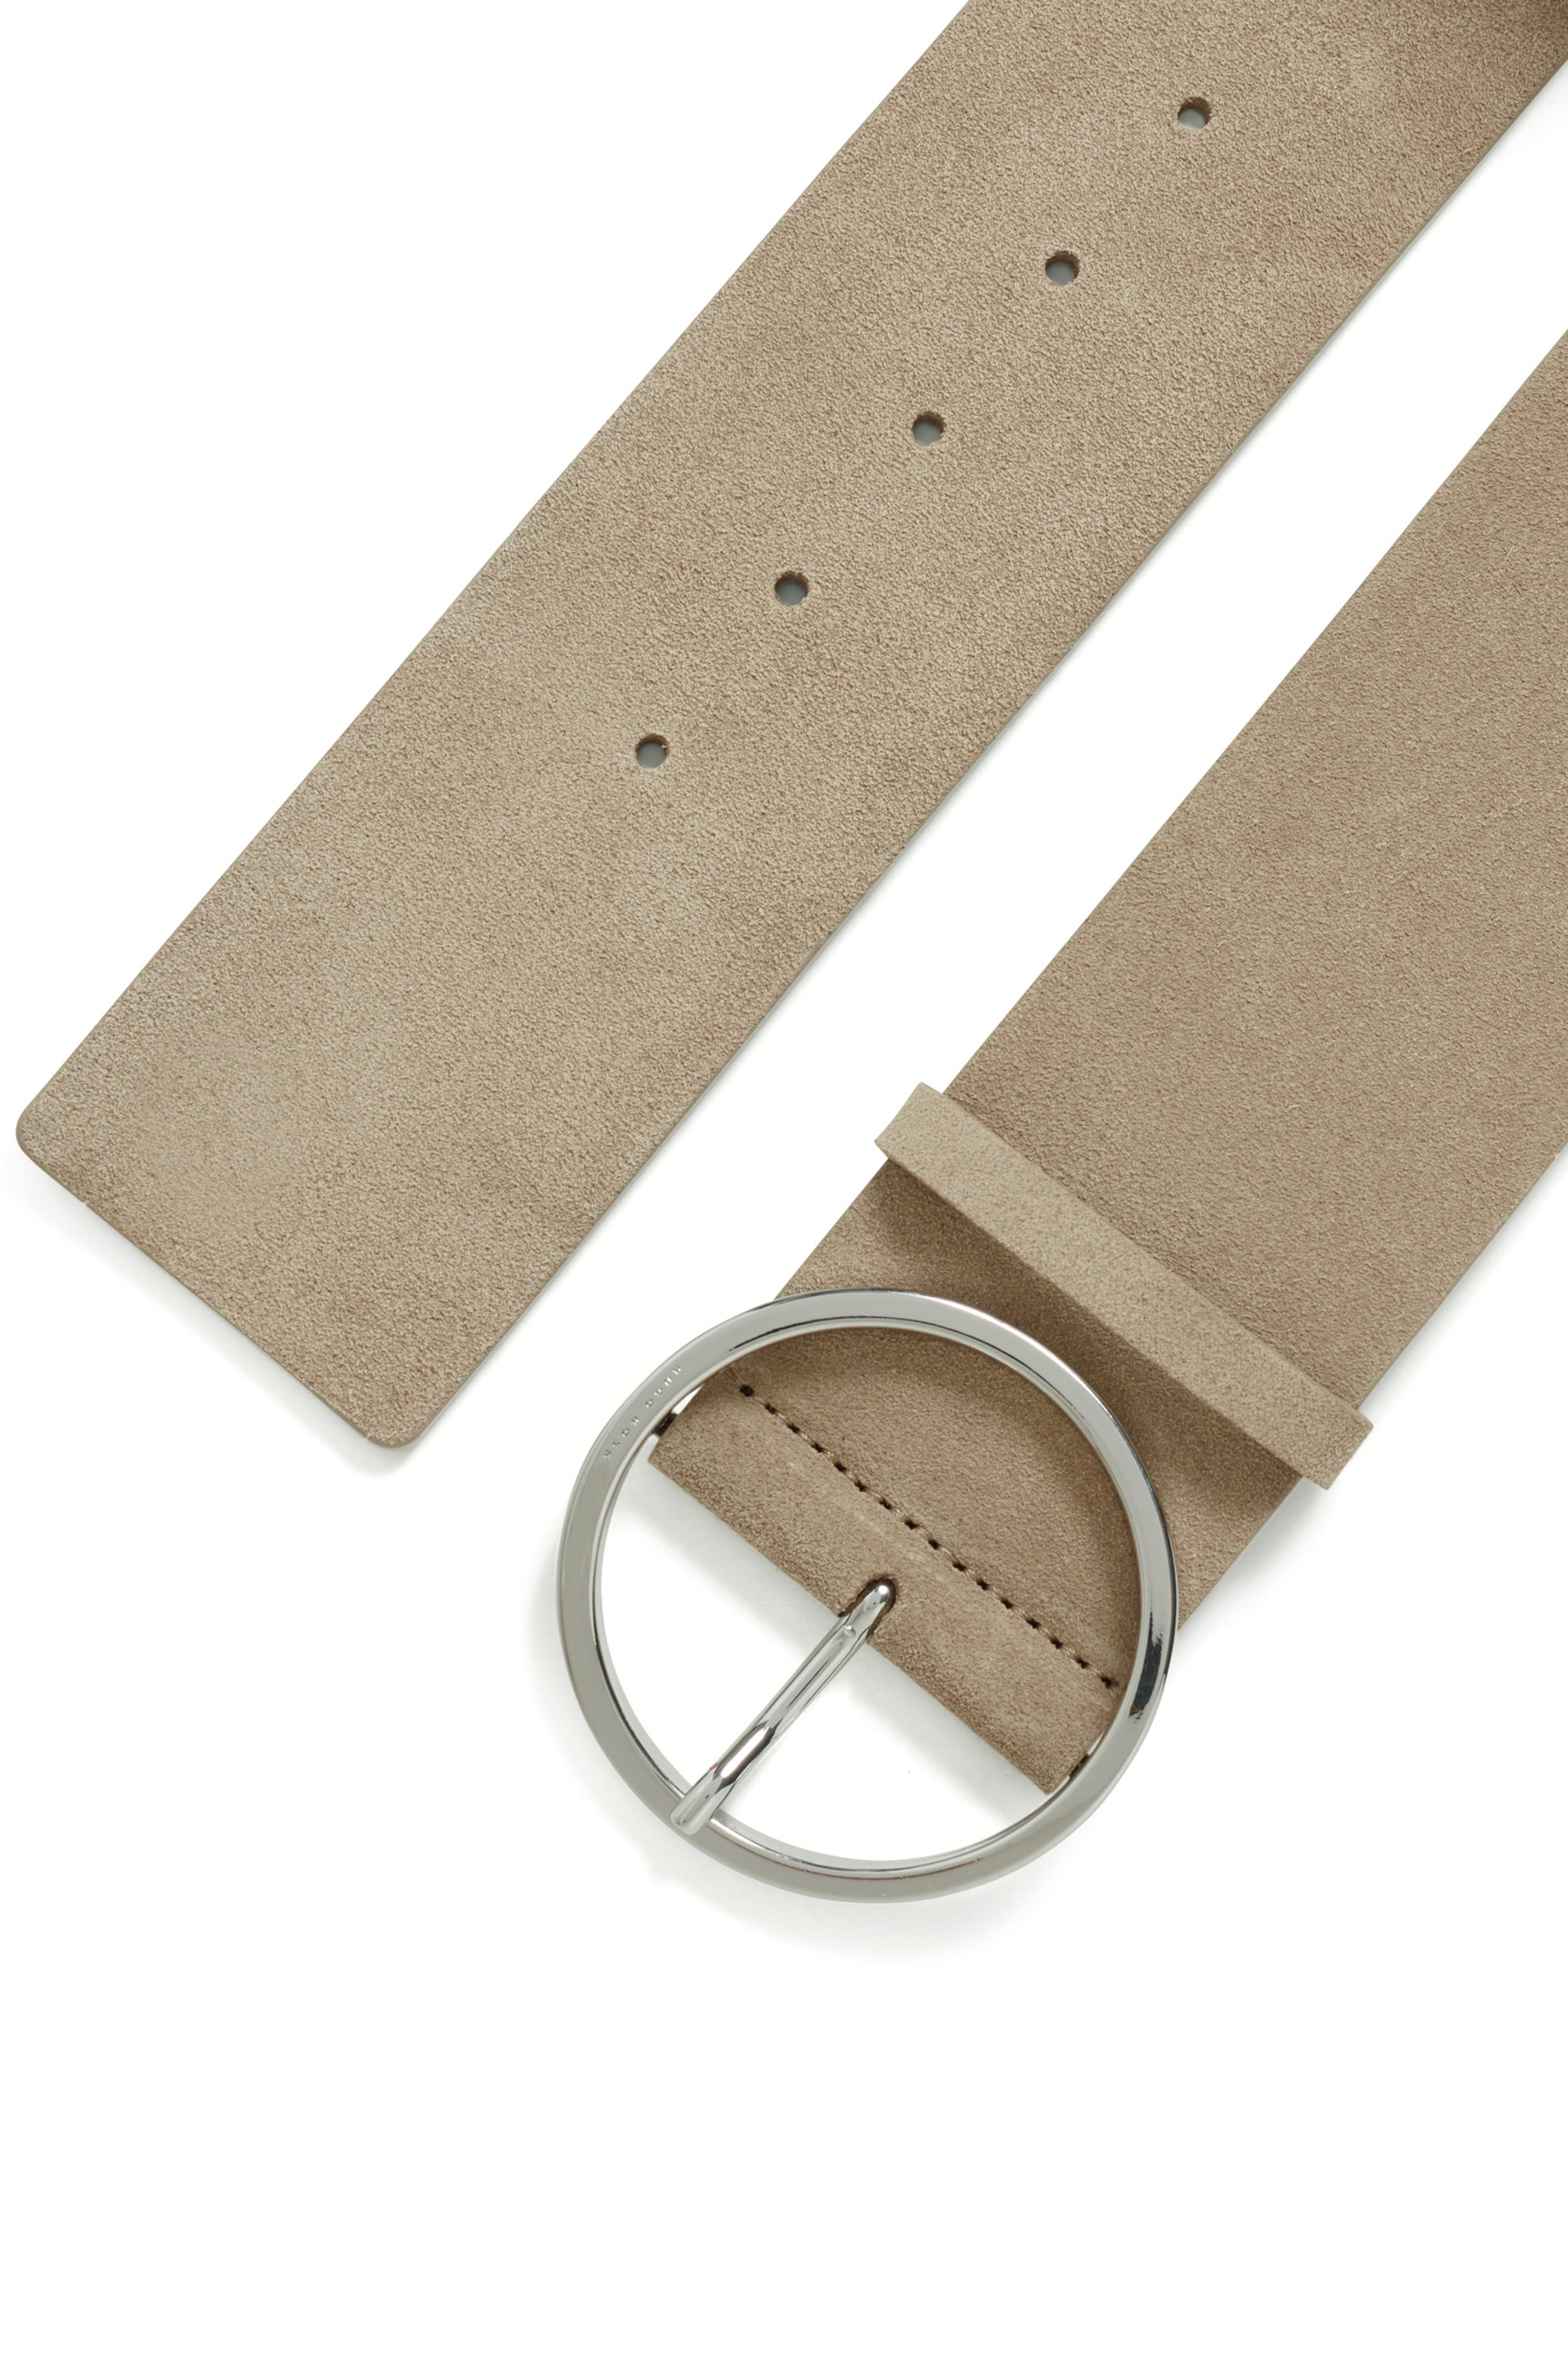 Italian-suede belt with round buckle in polished silver